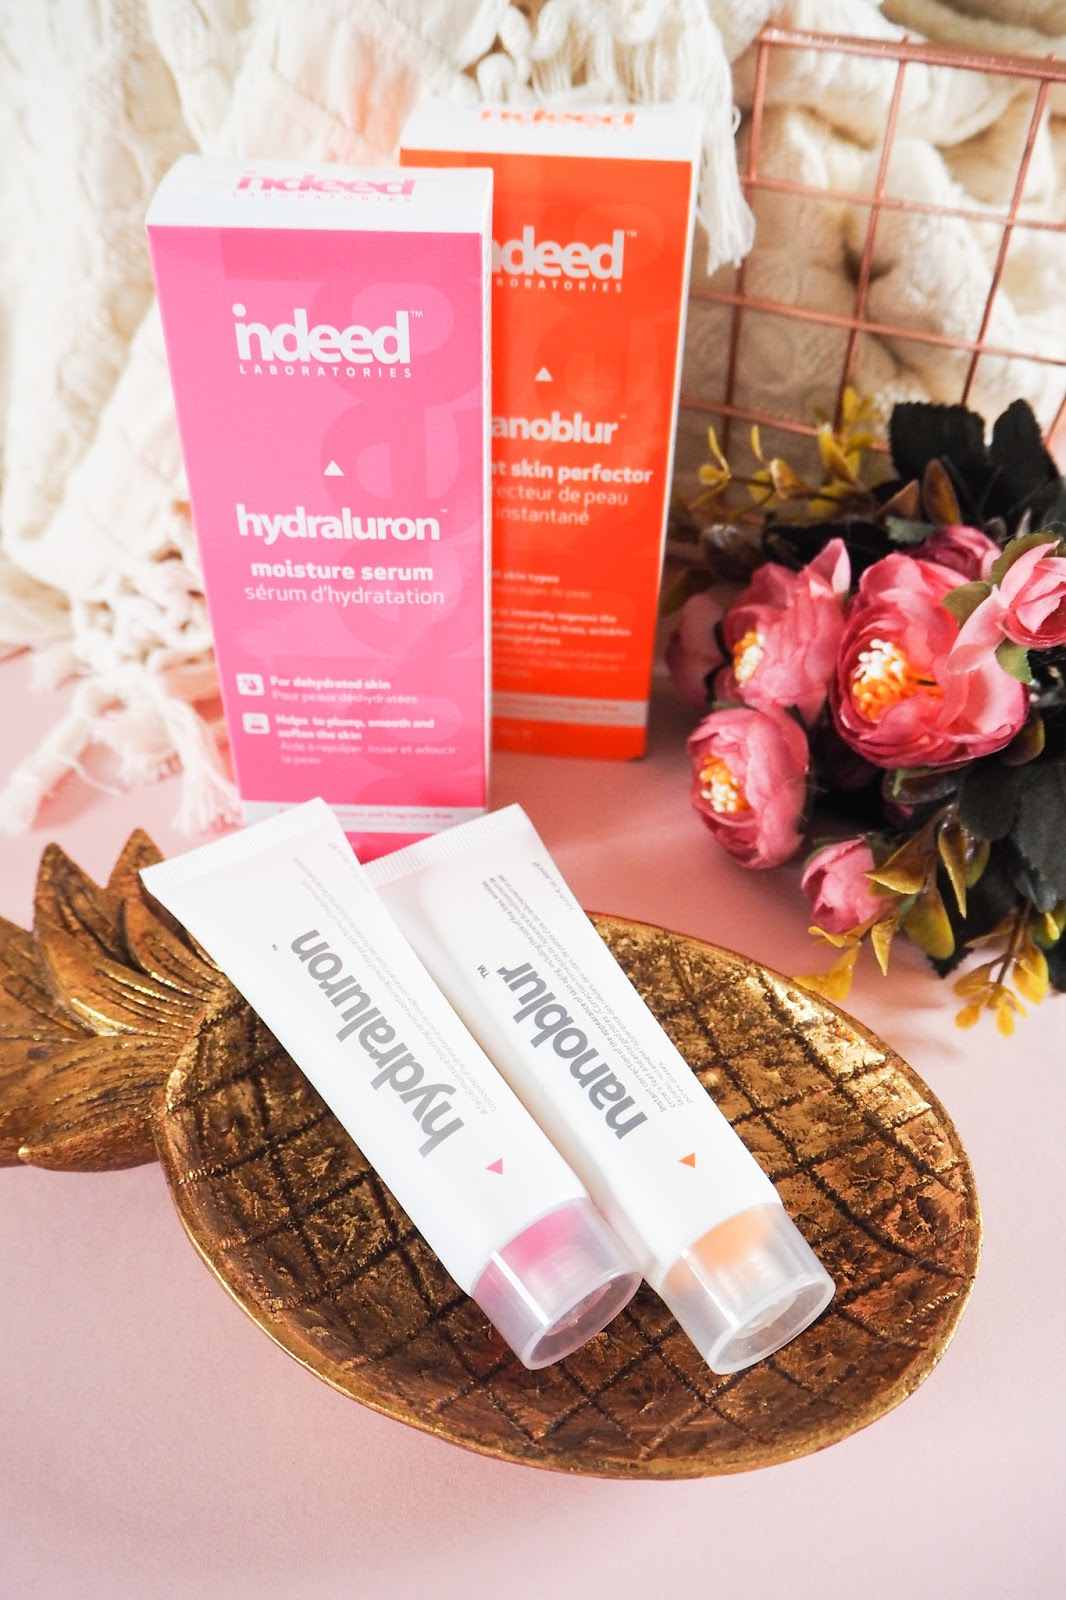 Indeed Labs Nanoblur Instant Skin Perfector and Hydraluron Moisture Serum Review